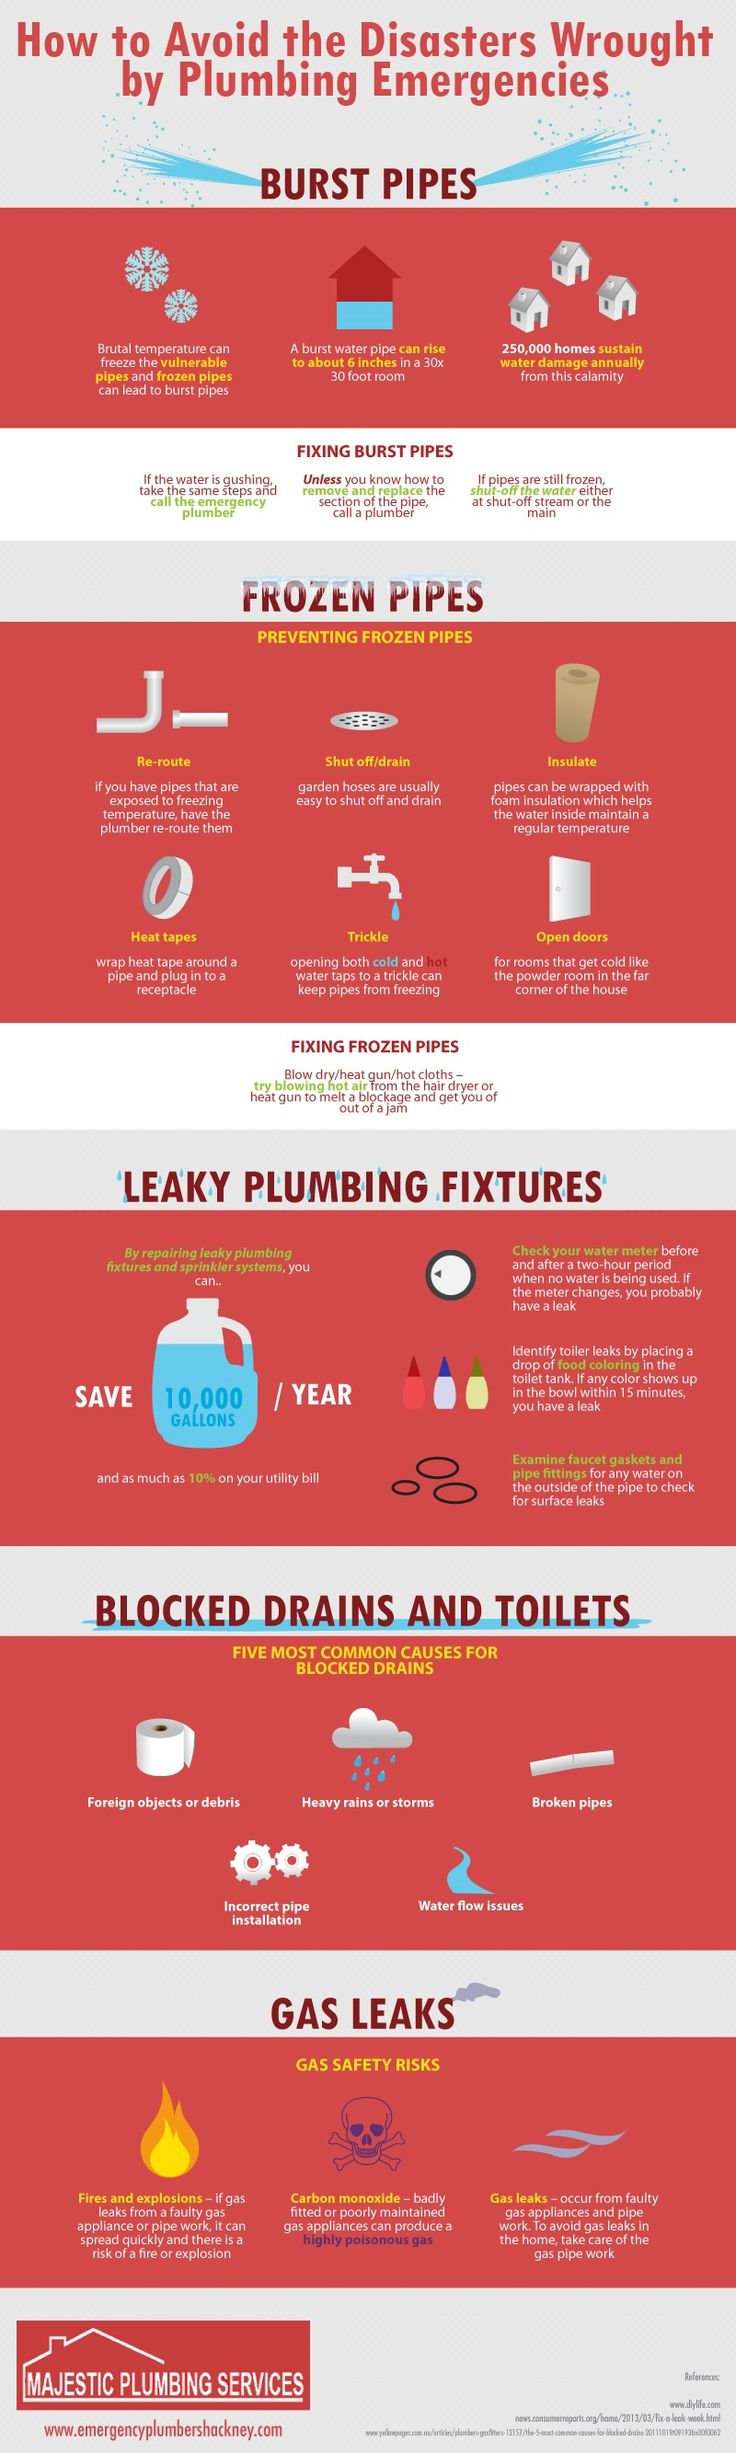 This is an infographic on plumbing emergencies which usually happen when you least expect it. If not controlled immediately, plumbing emergencies can